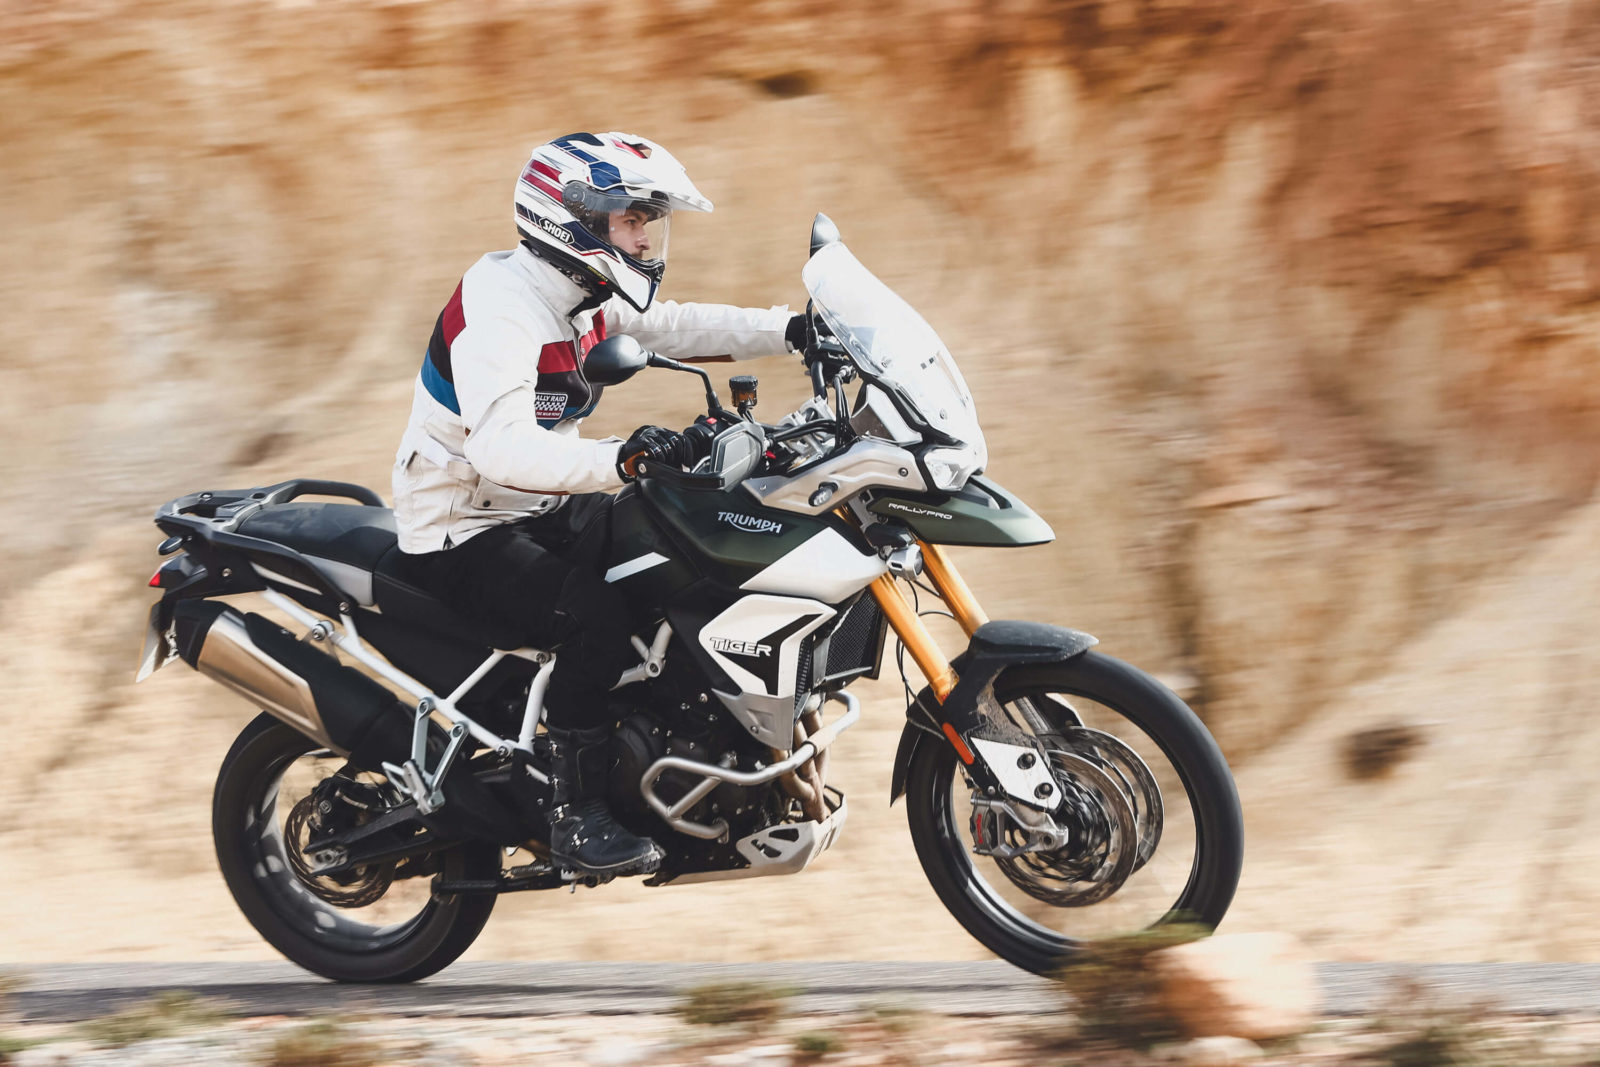 Triumph Tiger 900 2020 test avis Rally pro GT pro comparatif prix ride essai off-road route prix